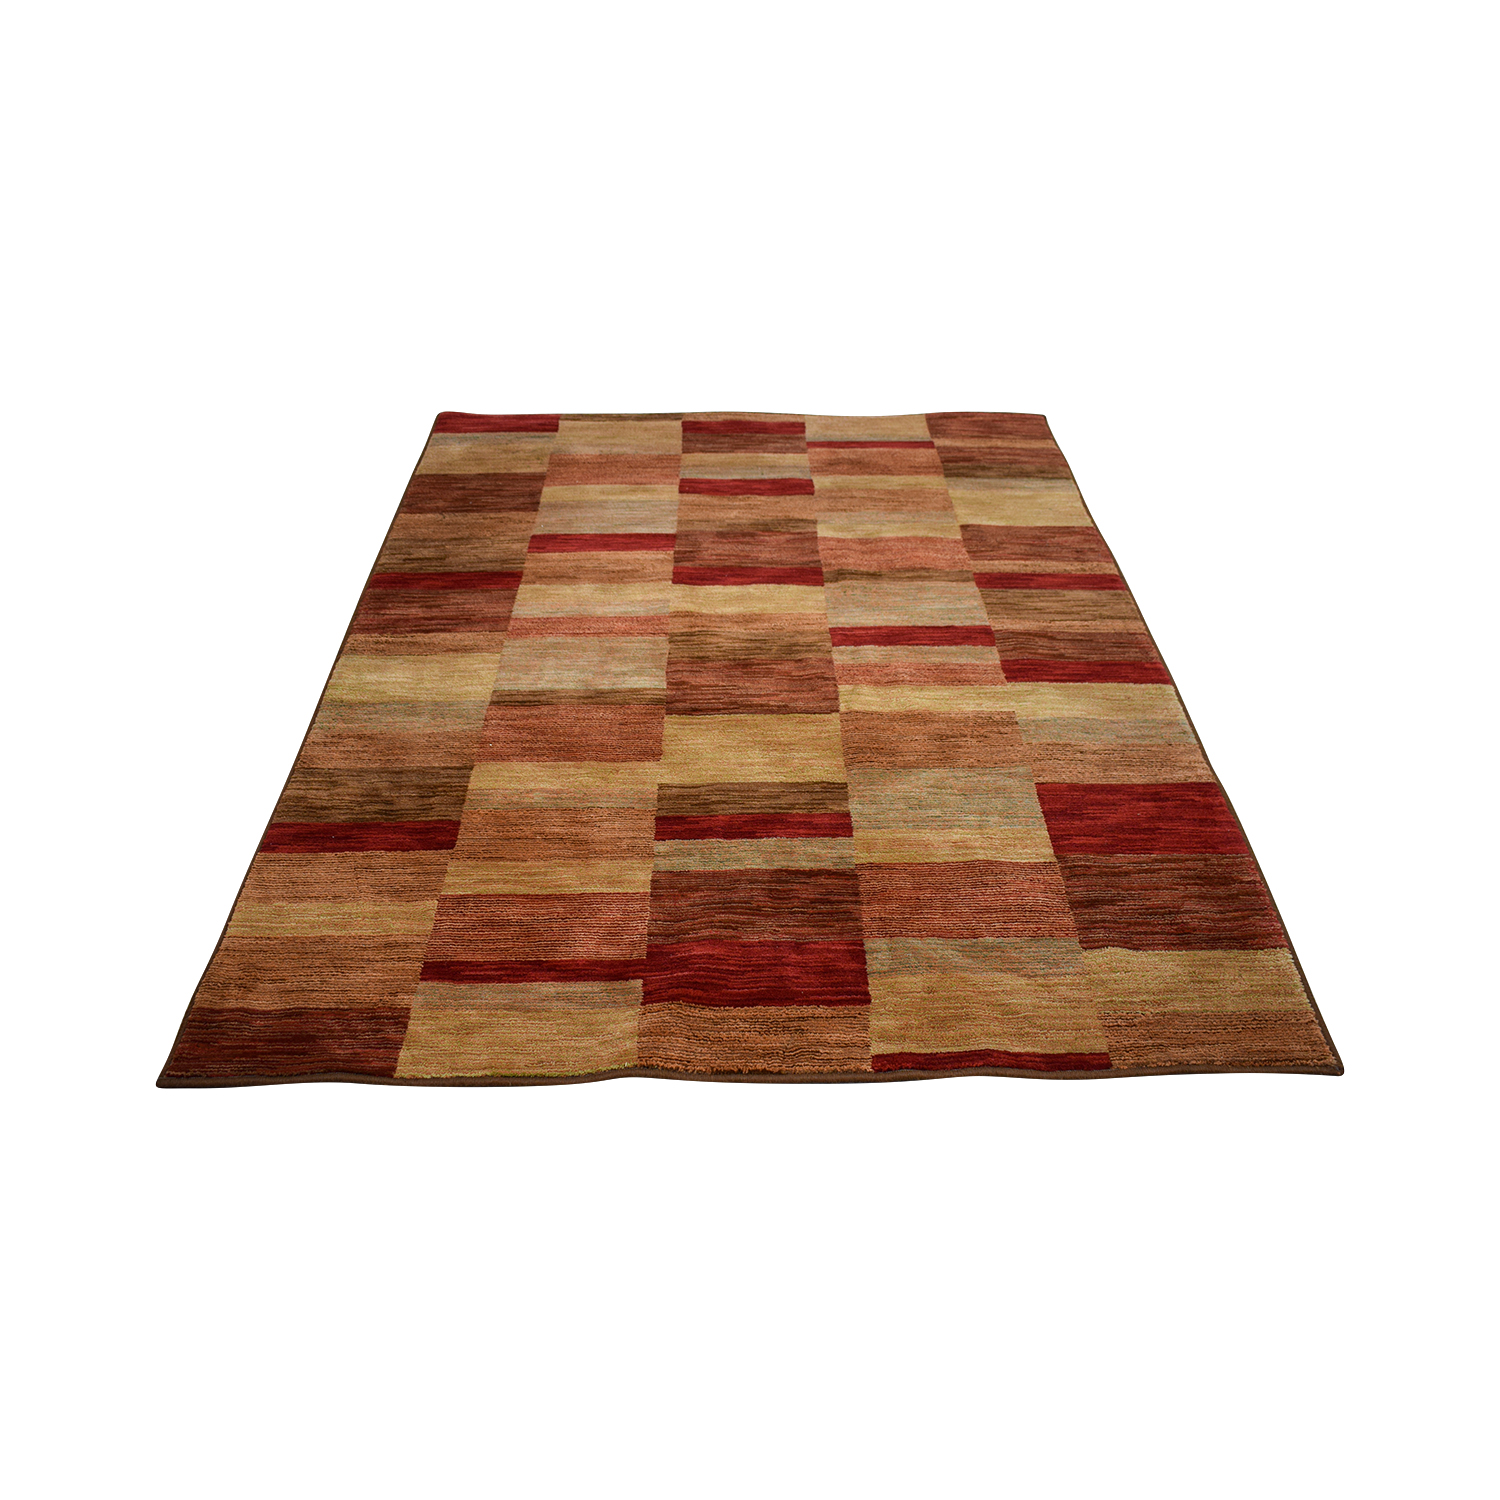 Raymour & Flanigan Shaw Living Burgundy Tan and Brown Rug Raymour & Flanigan